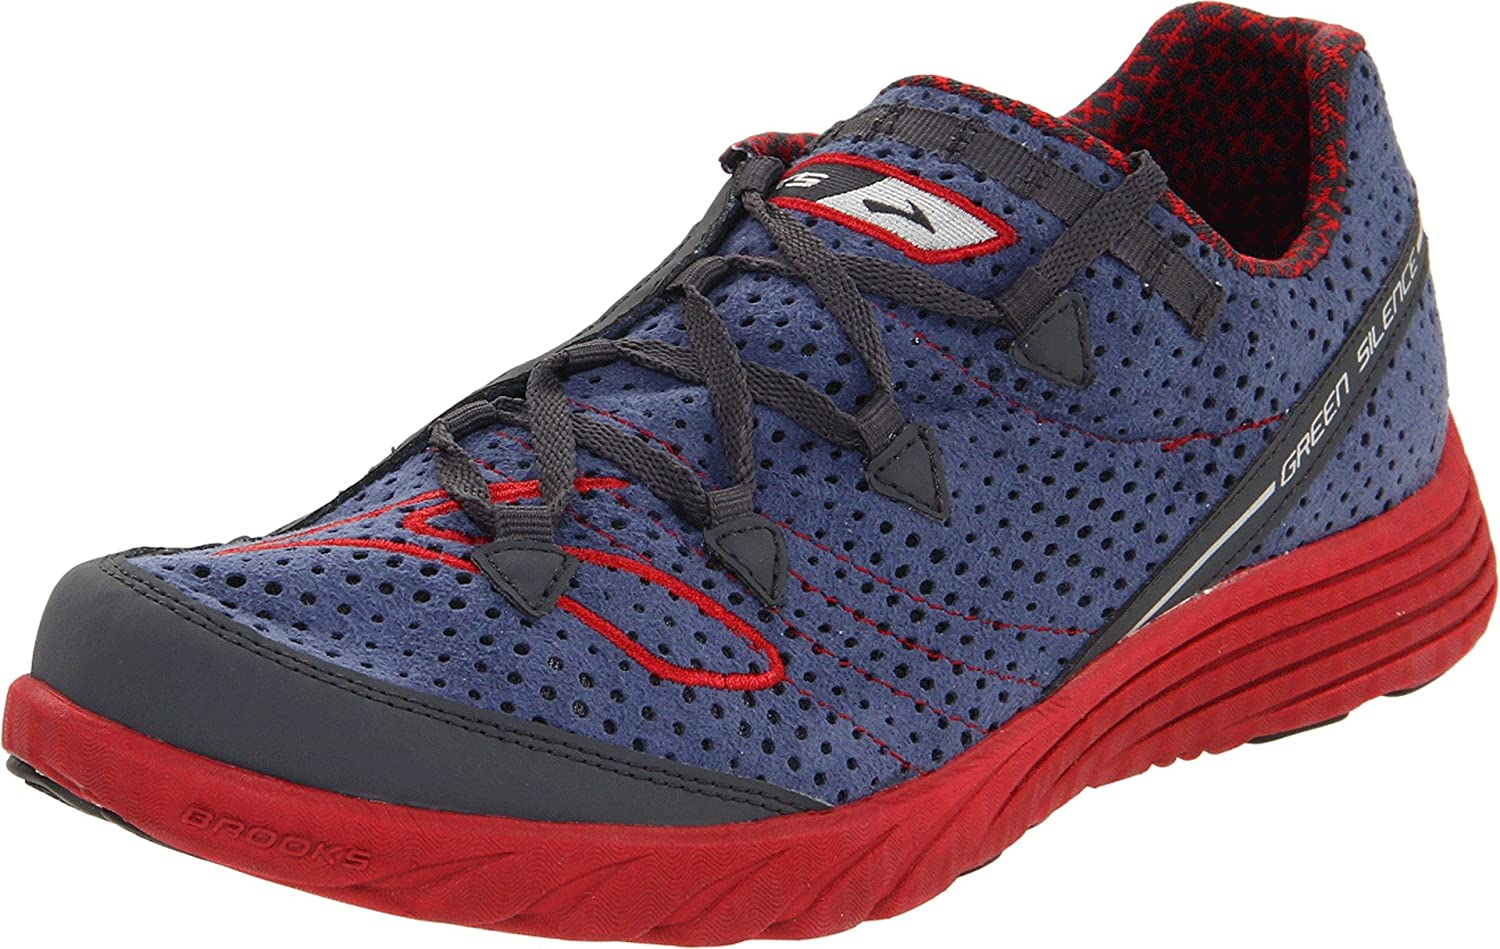 nike shoes for overpronation and supination 2017 2018